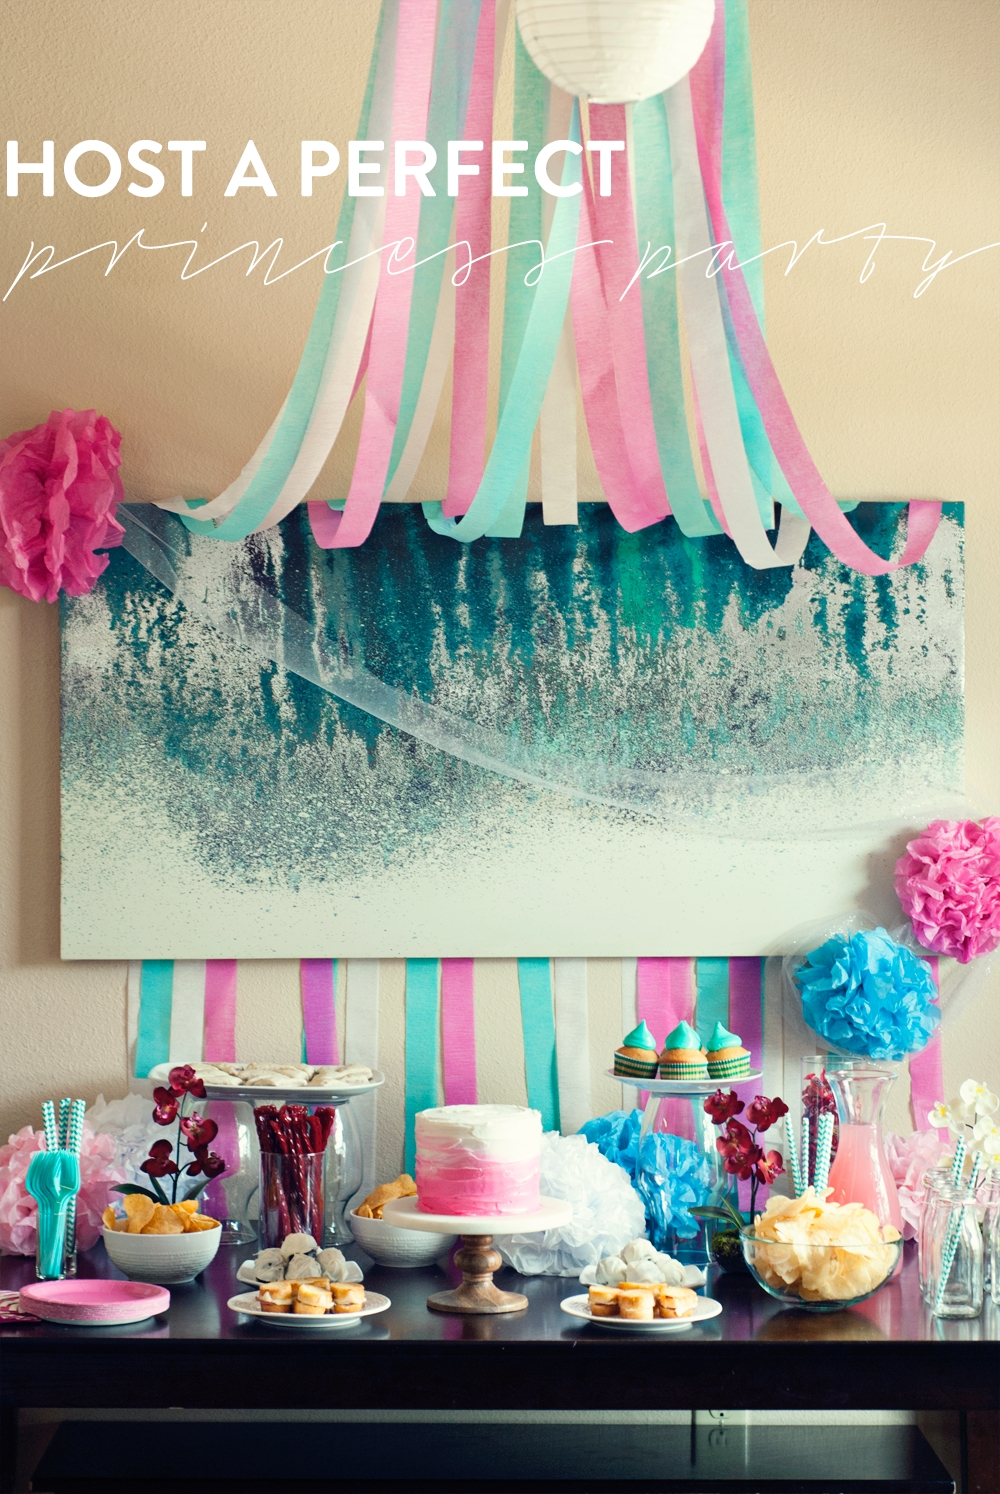 10 Great Slumber Party Ideas For Adults host a perfect princess slumber party a simple pantry 2021